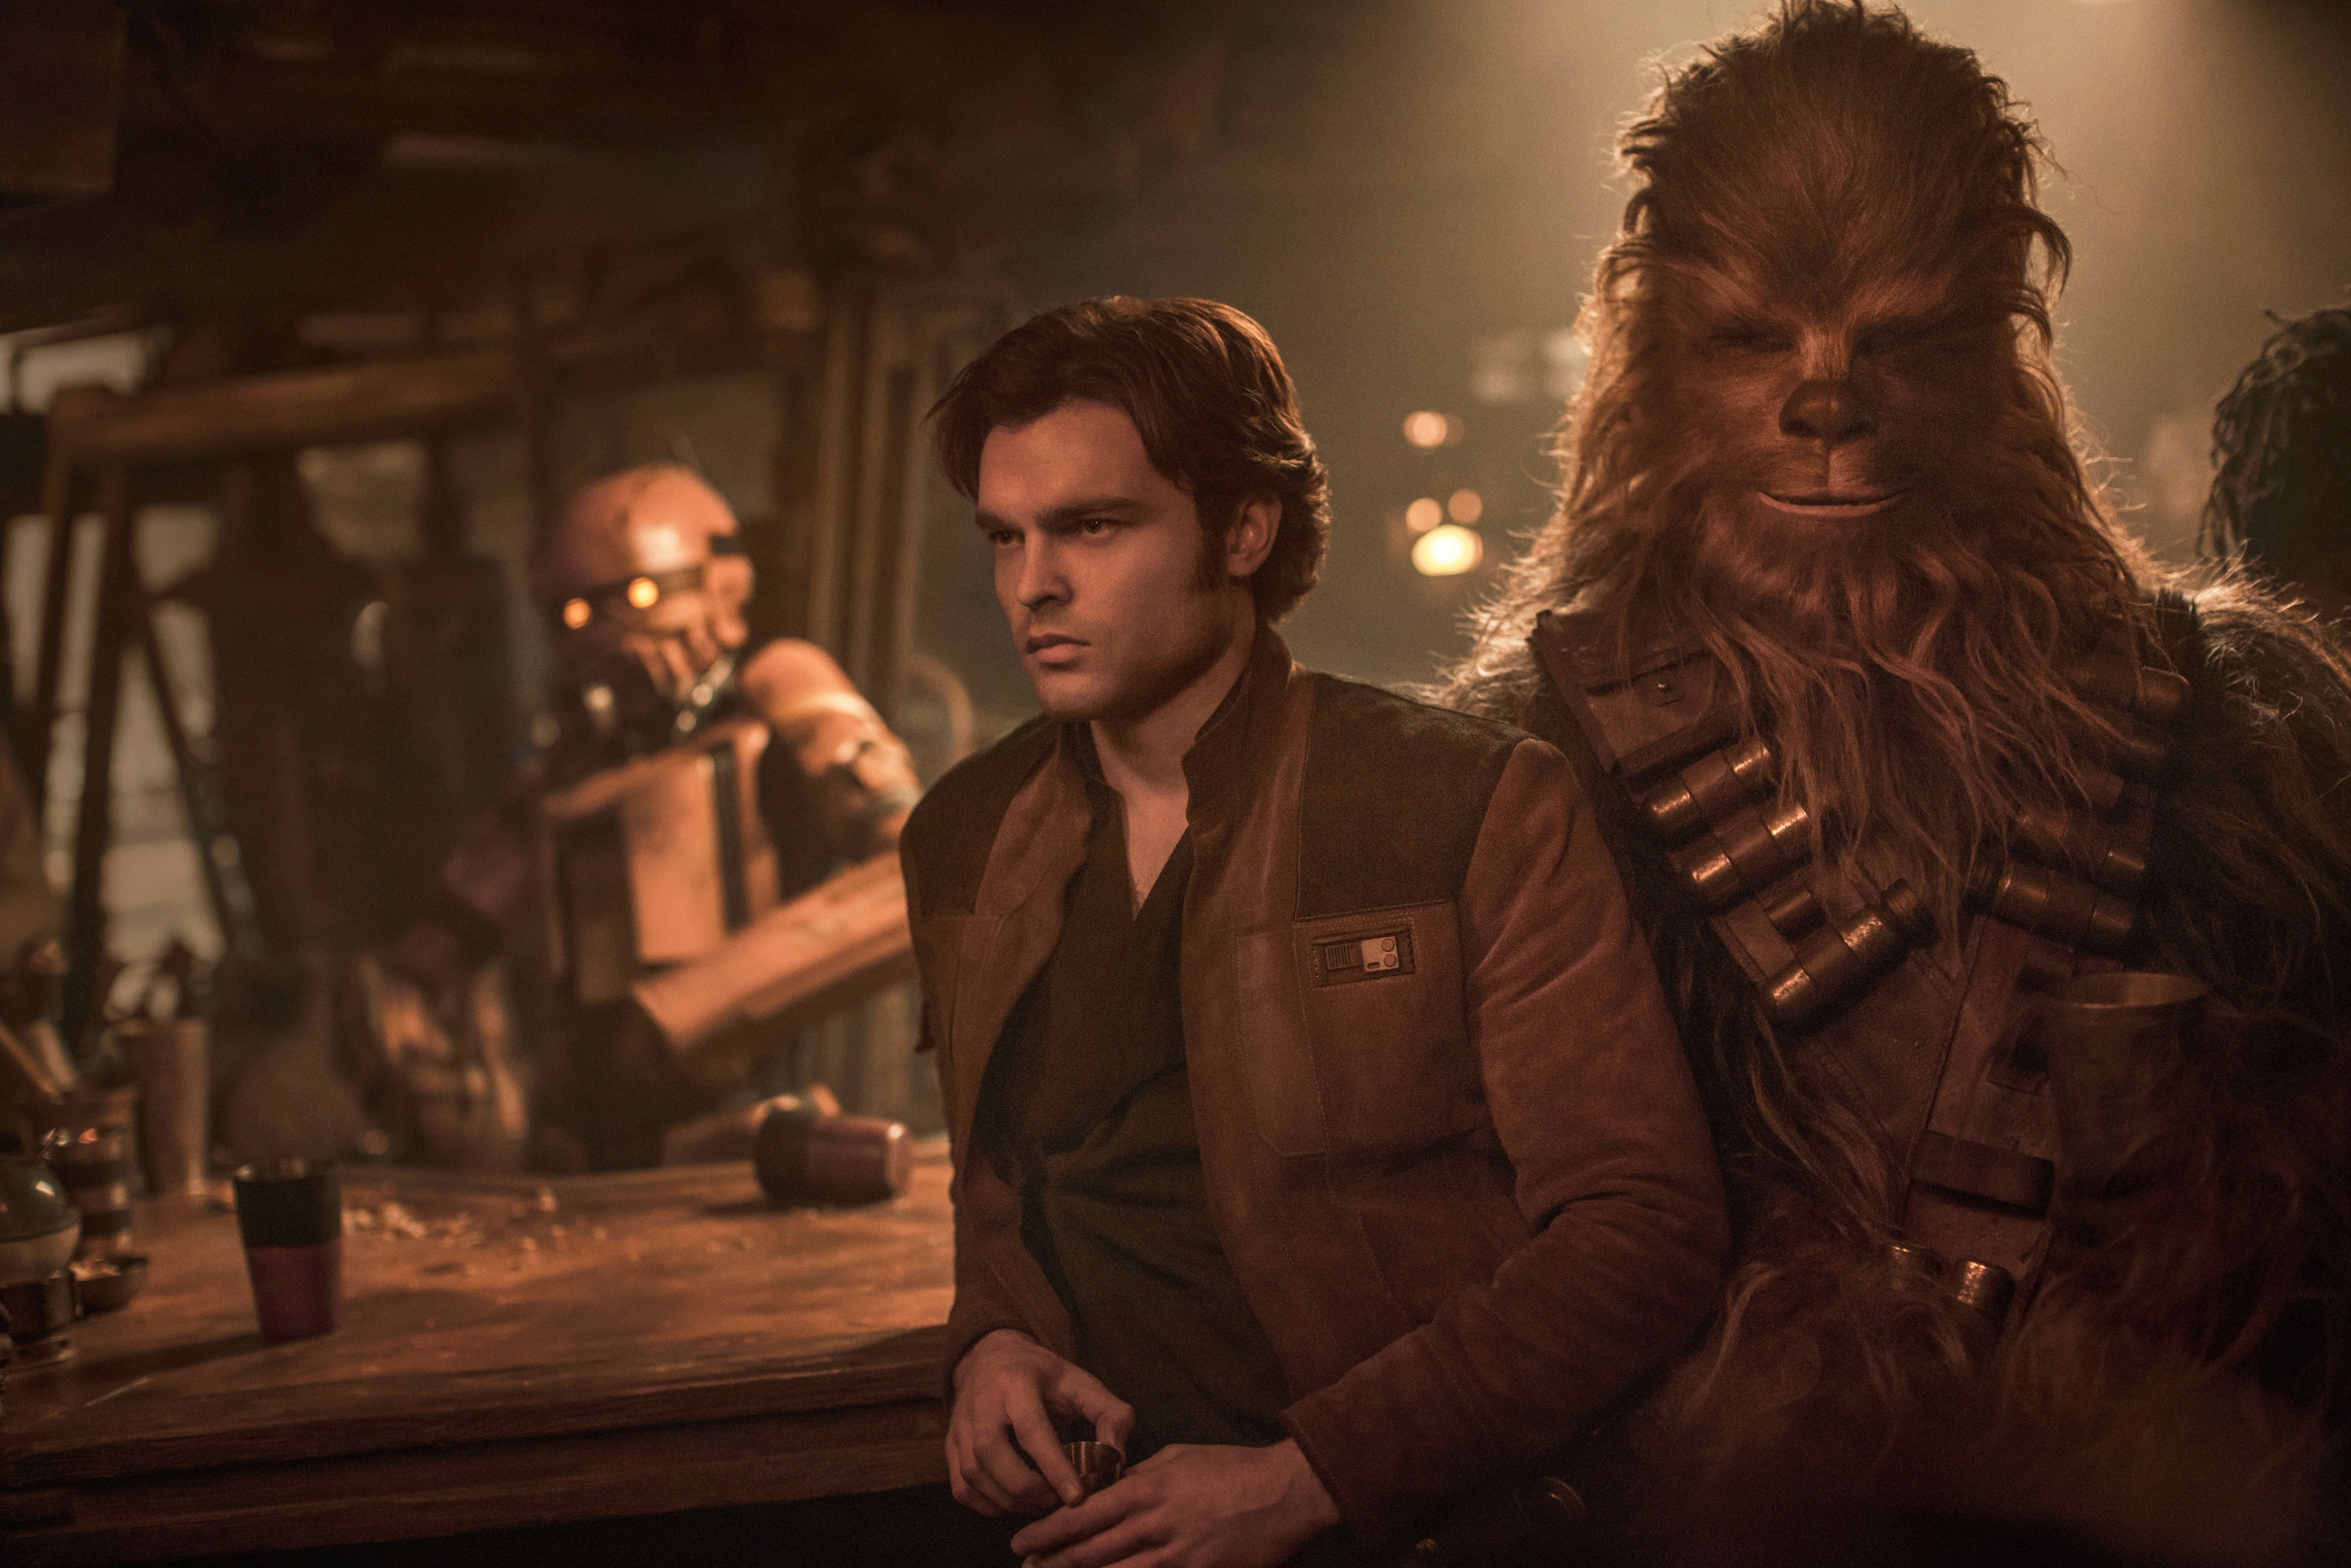 5 things to know about Solo: A Star Wars Story